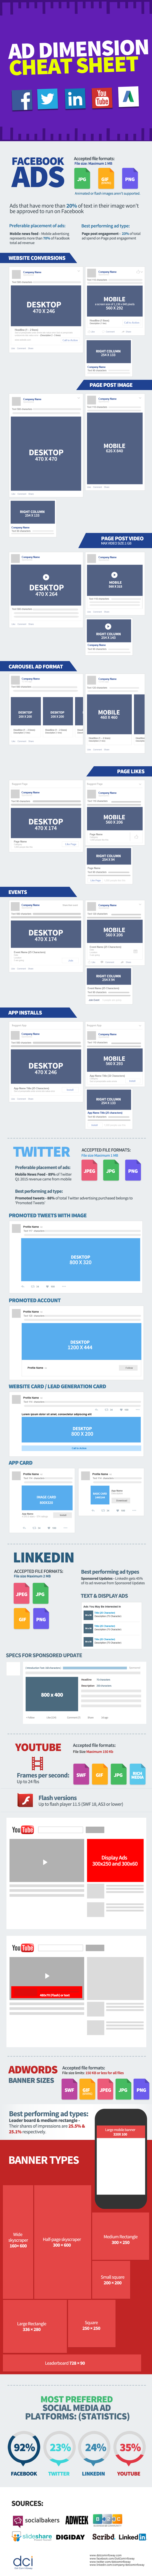 ad-image-size-guide-infographic